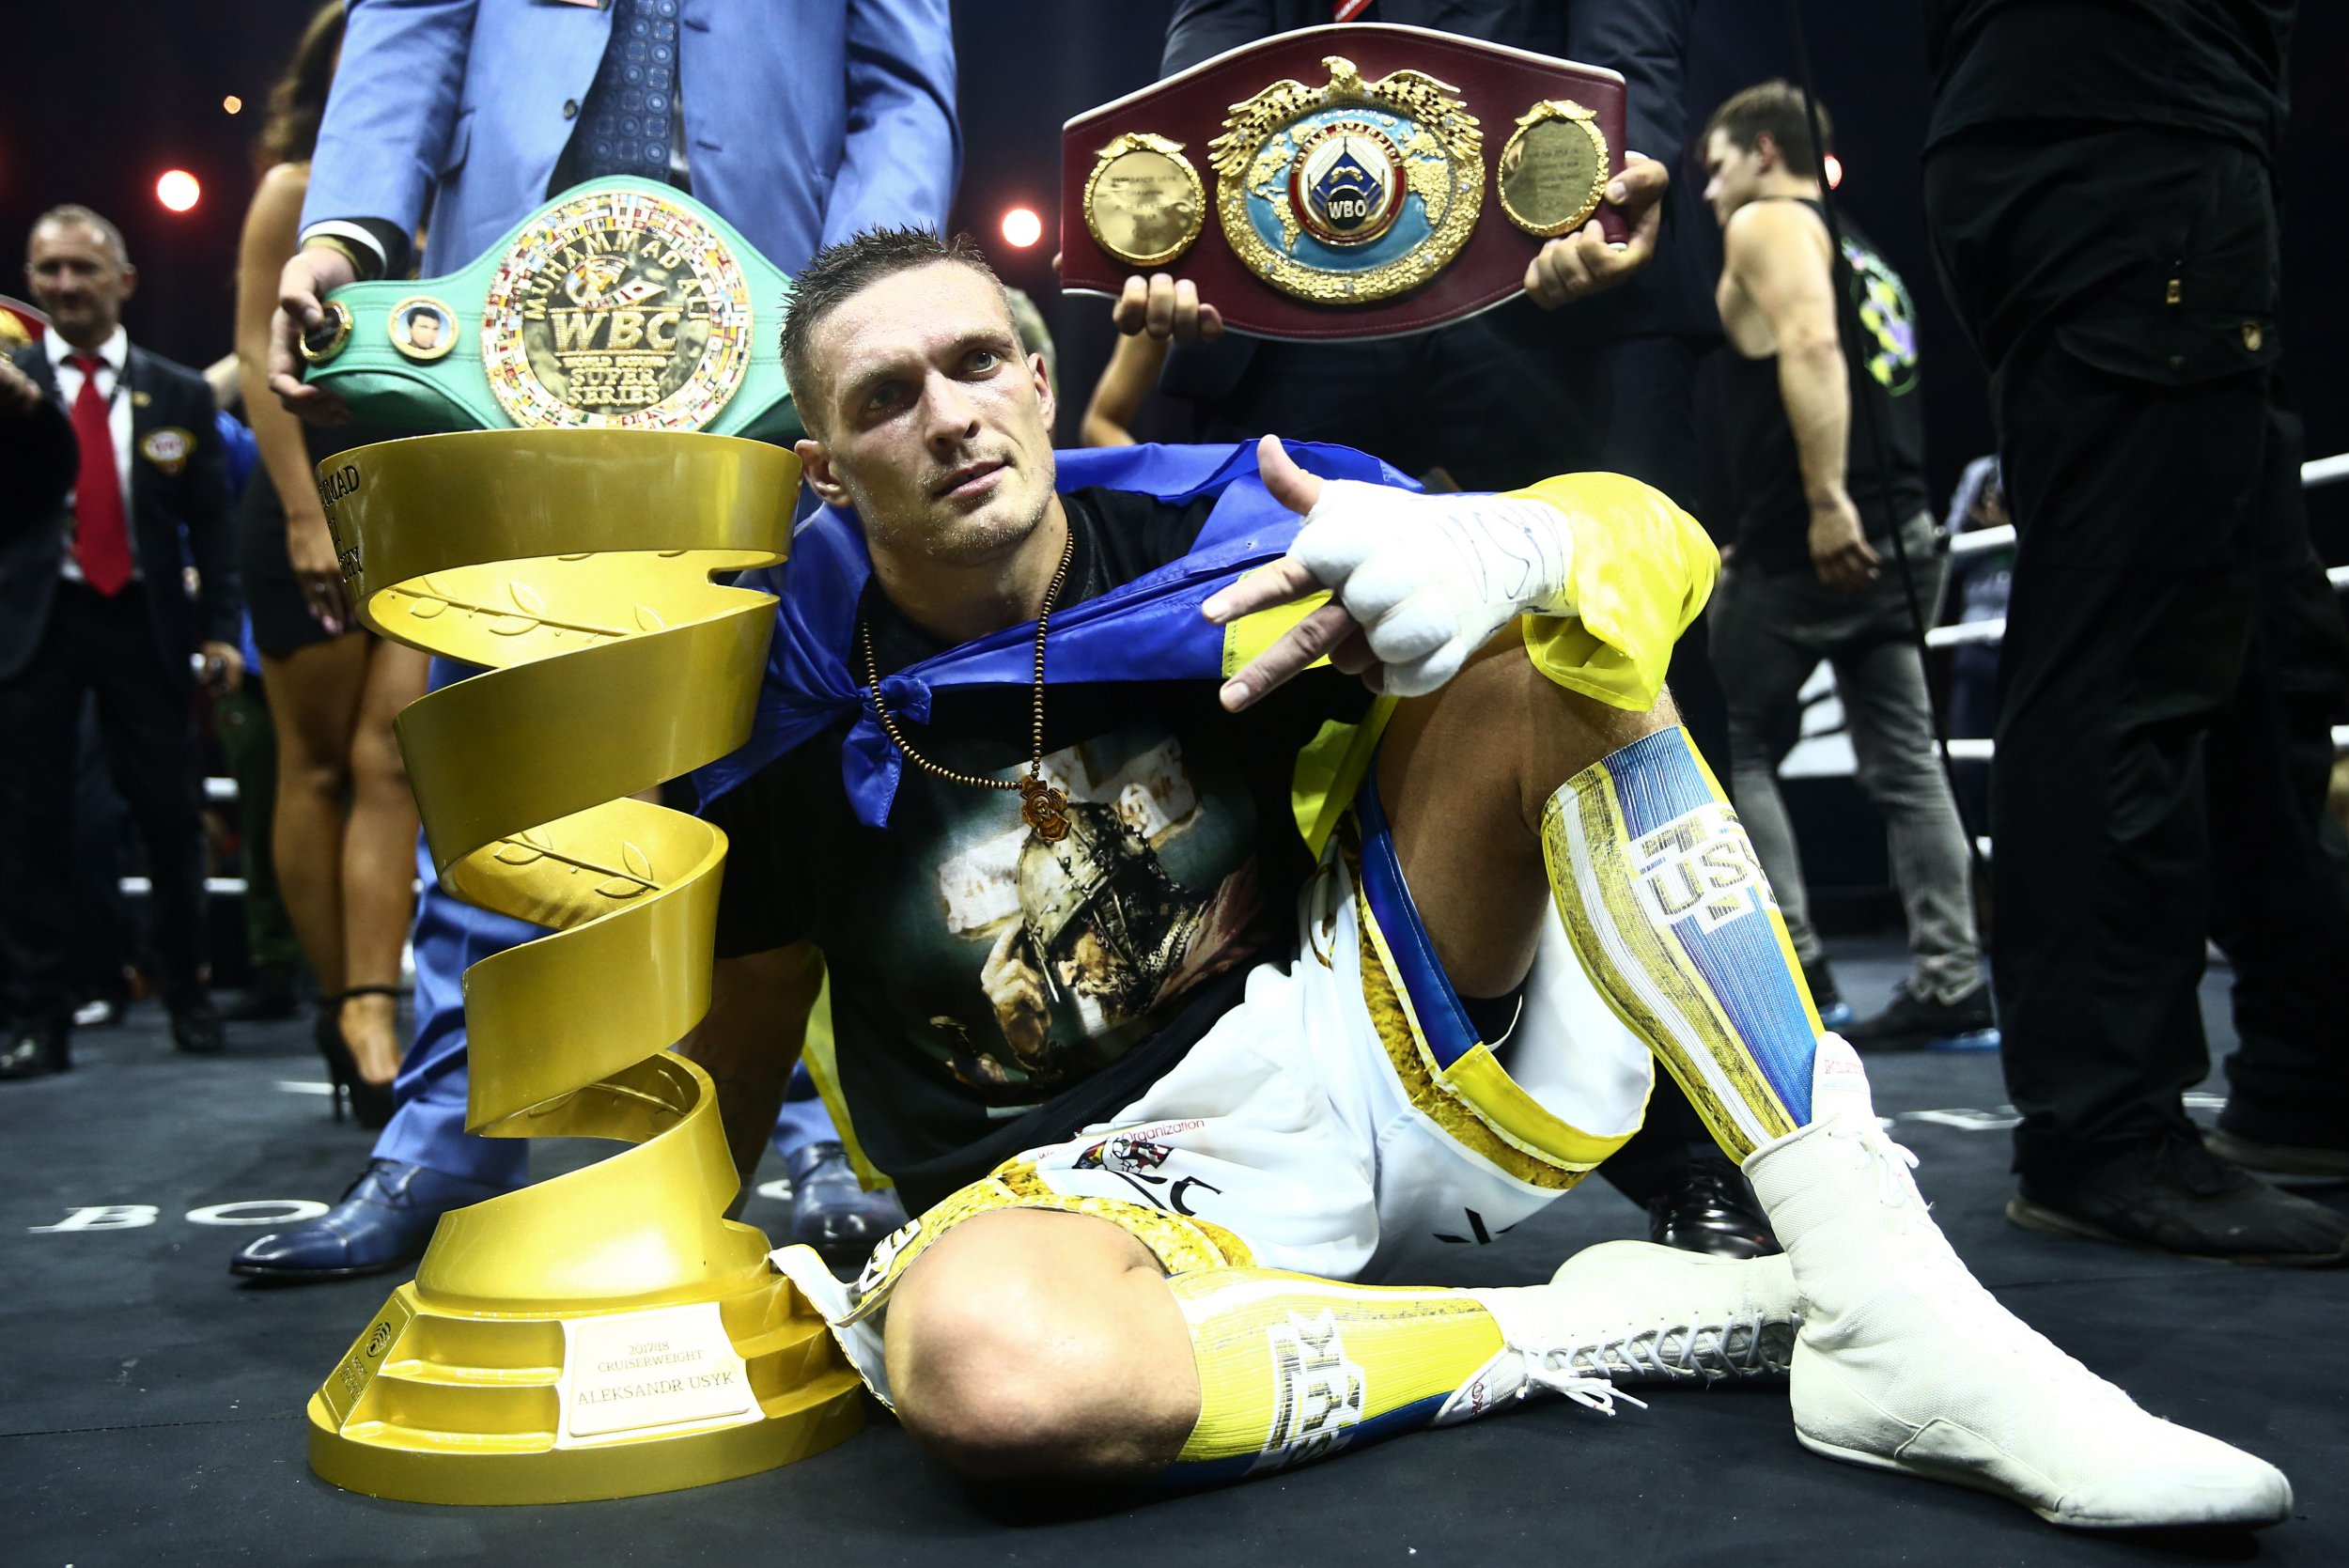 MOSCOW, RUSSIA - JULY 21, 2018: WBC/WBO champion Oleksandr Usyk (front) of Ukraine, poses with the Muhammad Ali Trophy as he wins his WBSS (World Boxing Super Series) cruiserweight final bout against WBA/IBF champion Murat Gassiev of Russia, at Moscow's Olympiyskiy Arena. Valery Sharifulin/TASS (Photo by Valery Sharifulin\TASS via Getty Images)